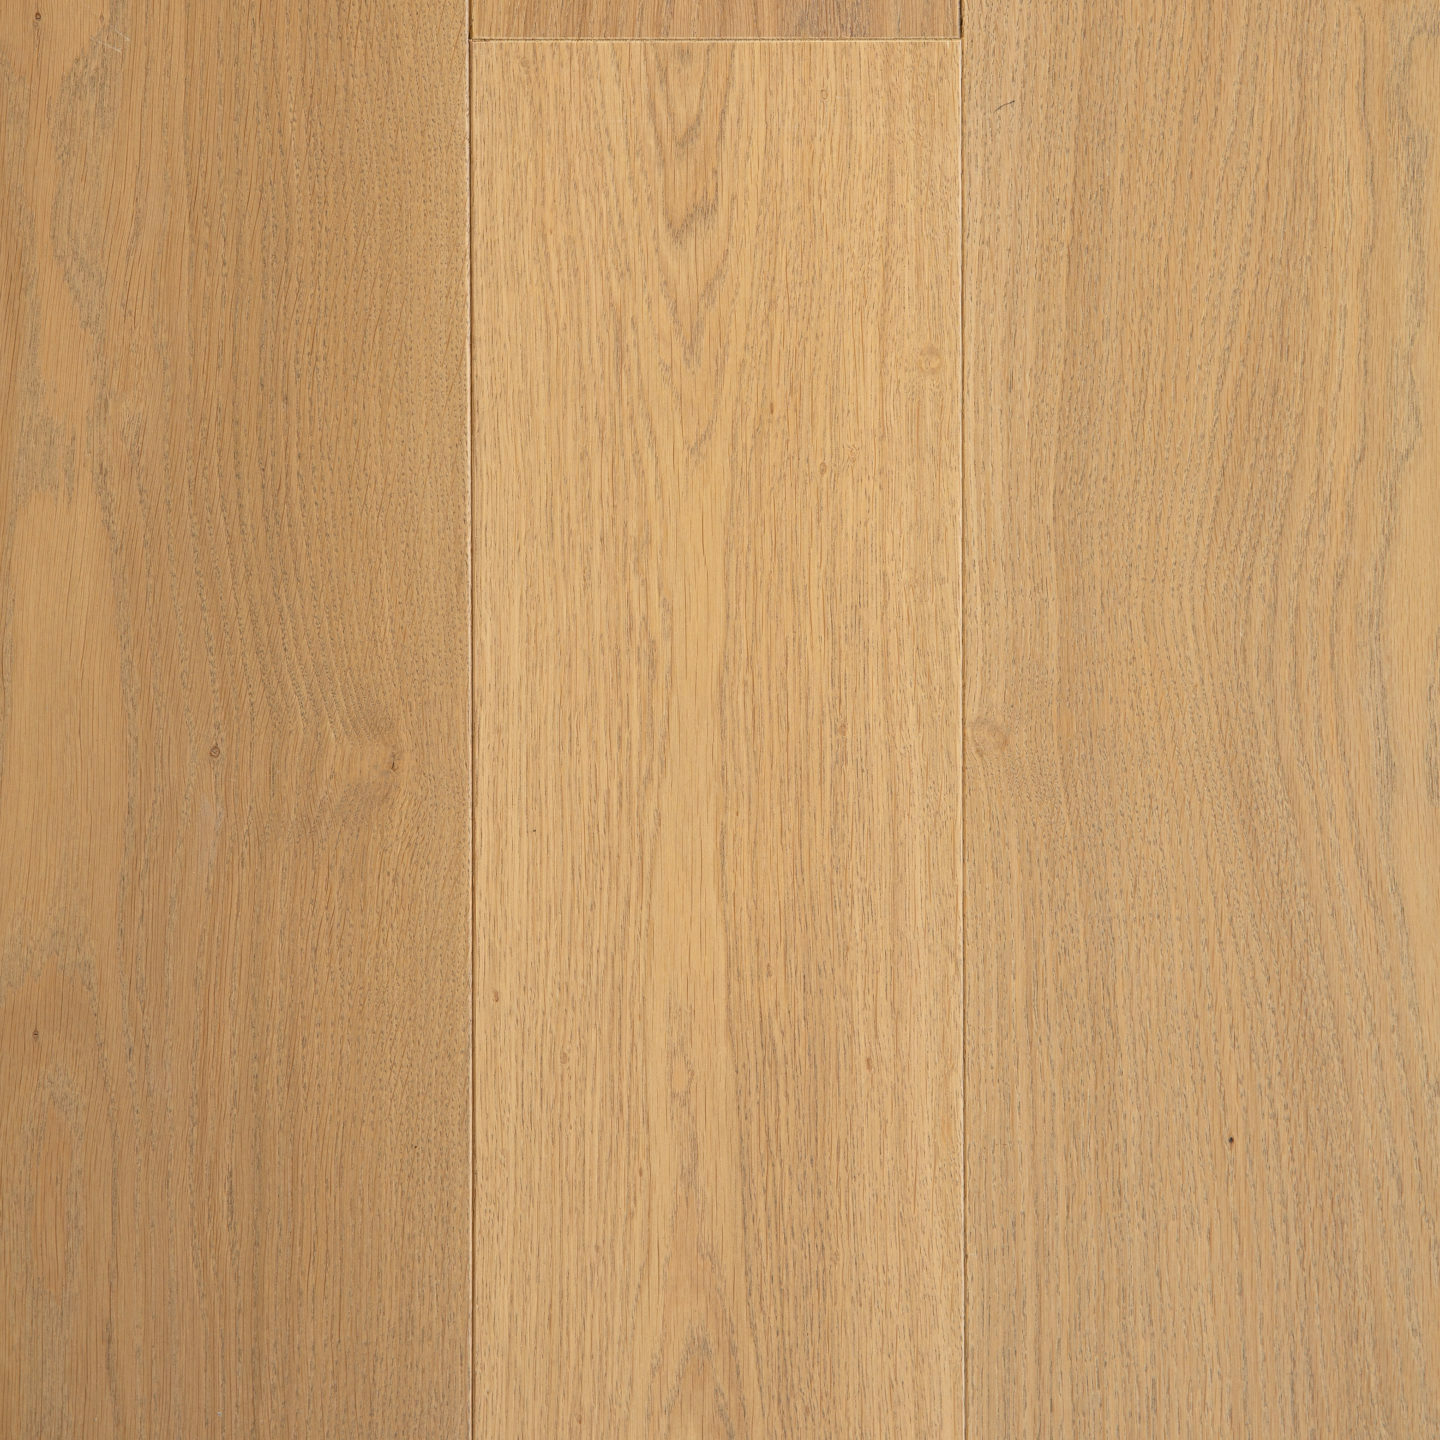 Wood Parquet Flooring - Tunis